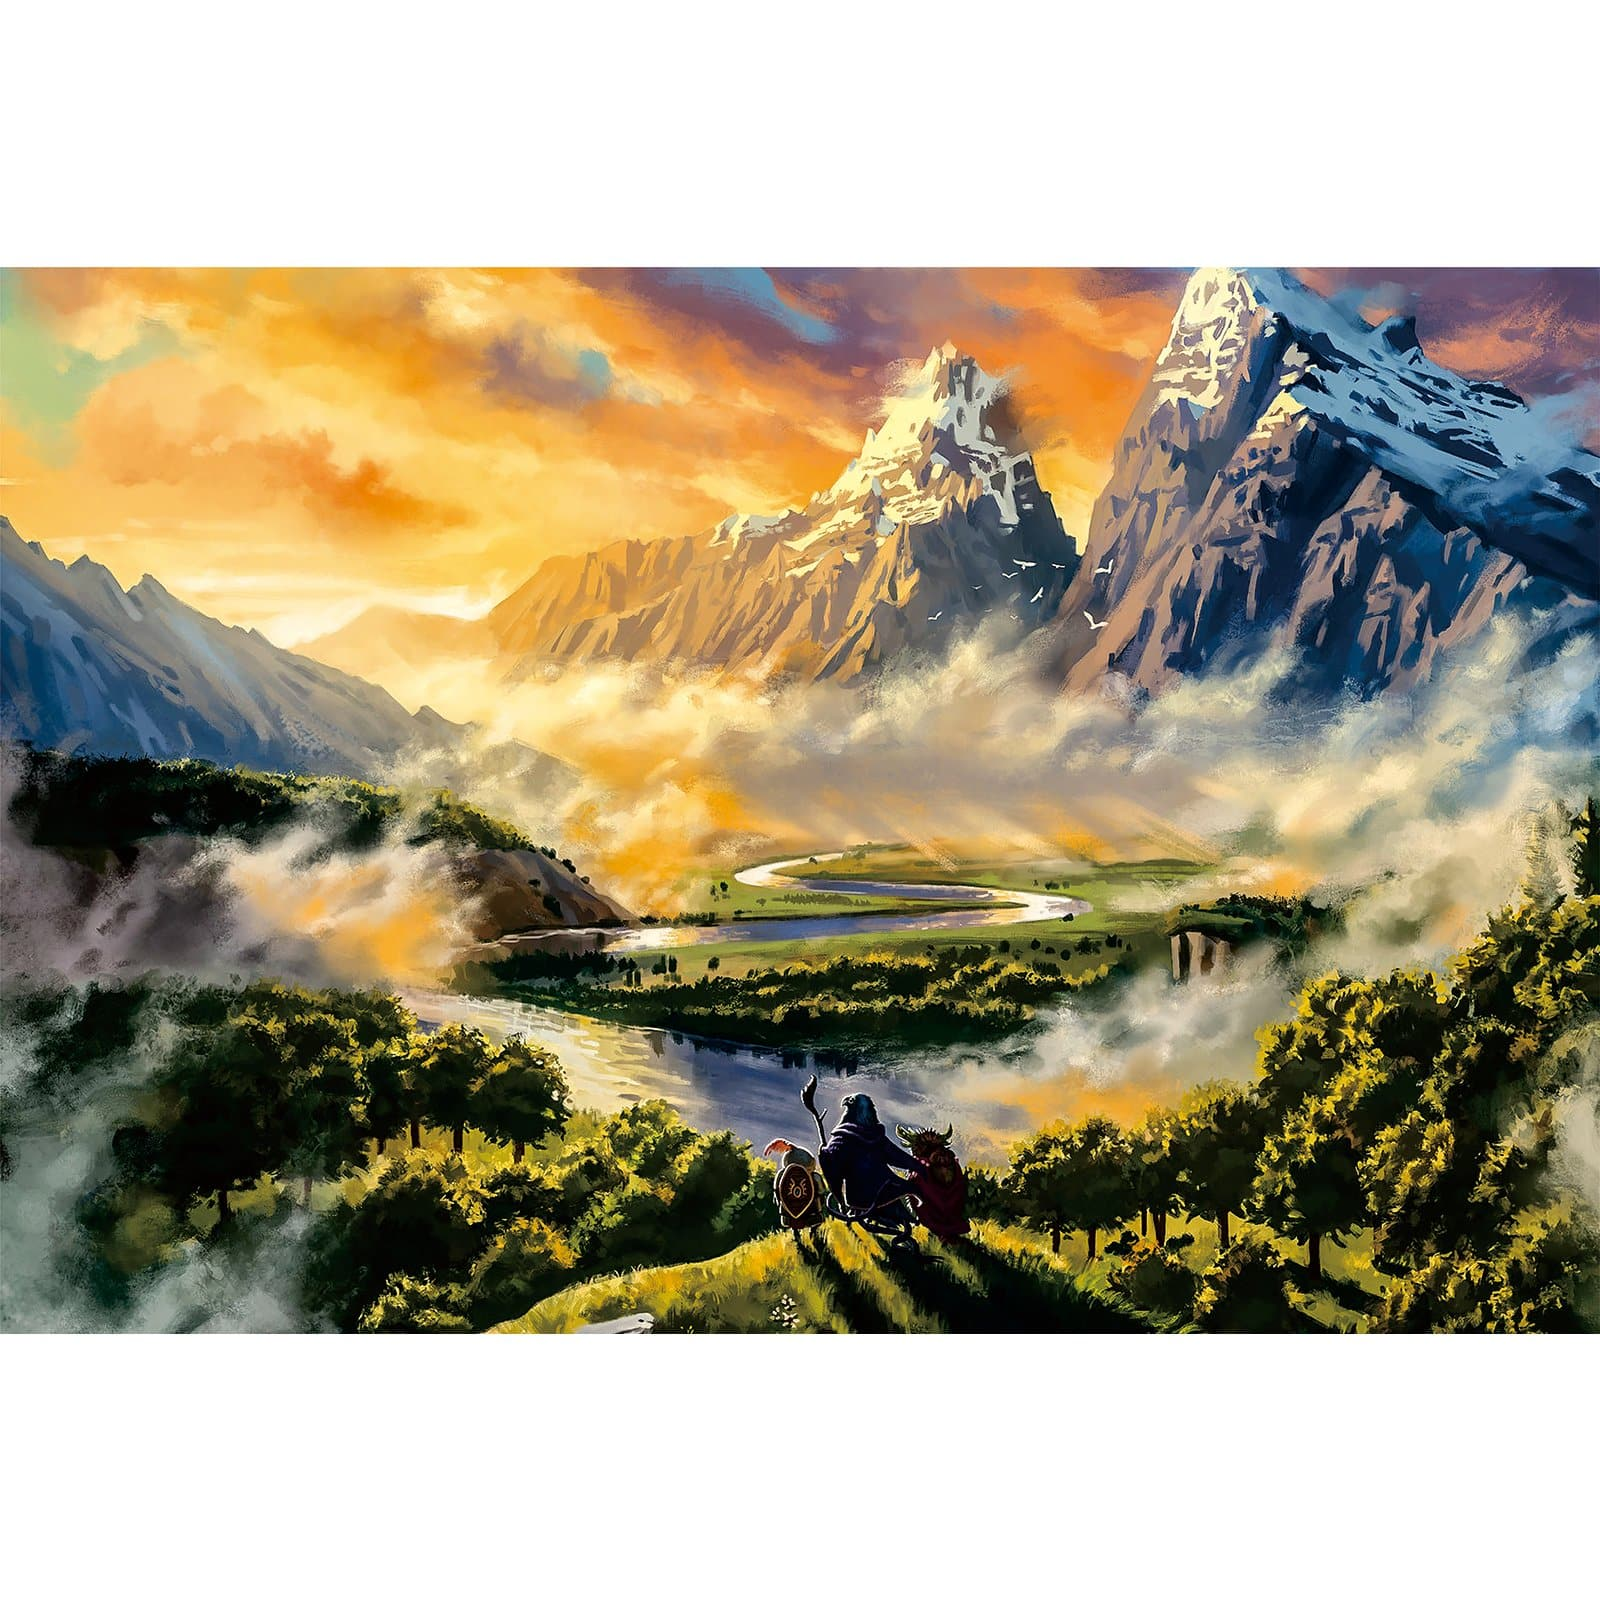 Ingooood Wooden Jigsaw Puzzle 1000 Pieces for Adult-Embark on a journey - Ingooood jigsaw puzzle 1000 piece